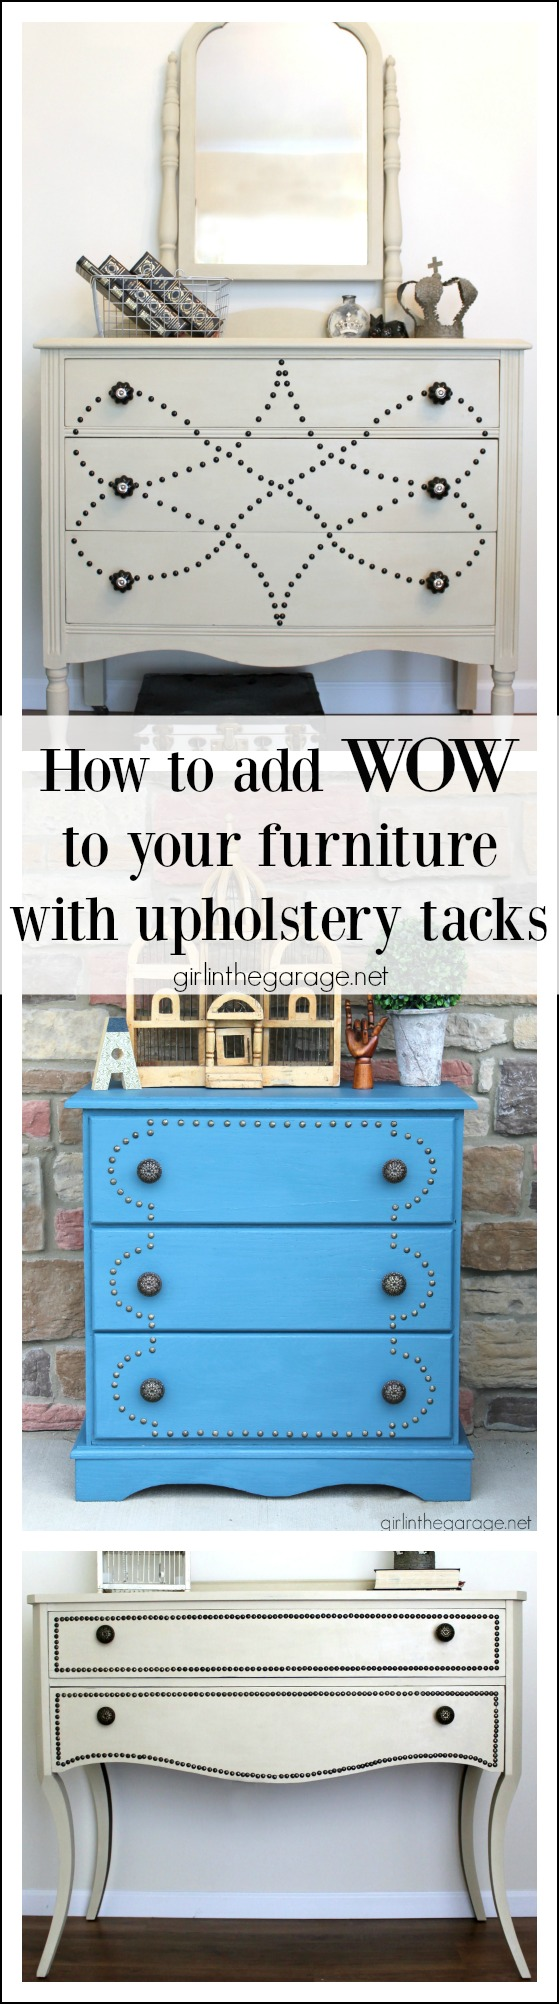 How to add WOW to furniture with upholstery tacks - girlinthegarage.net